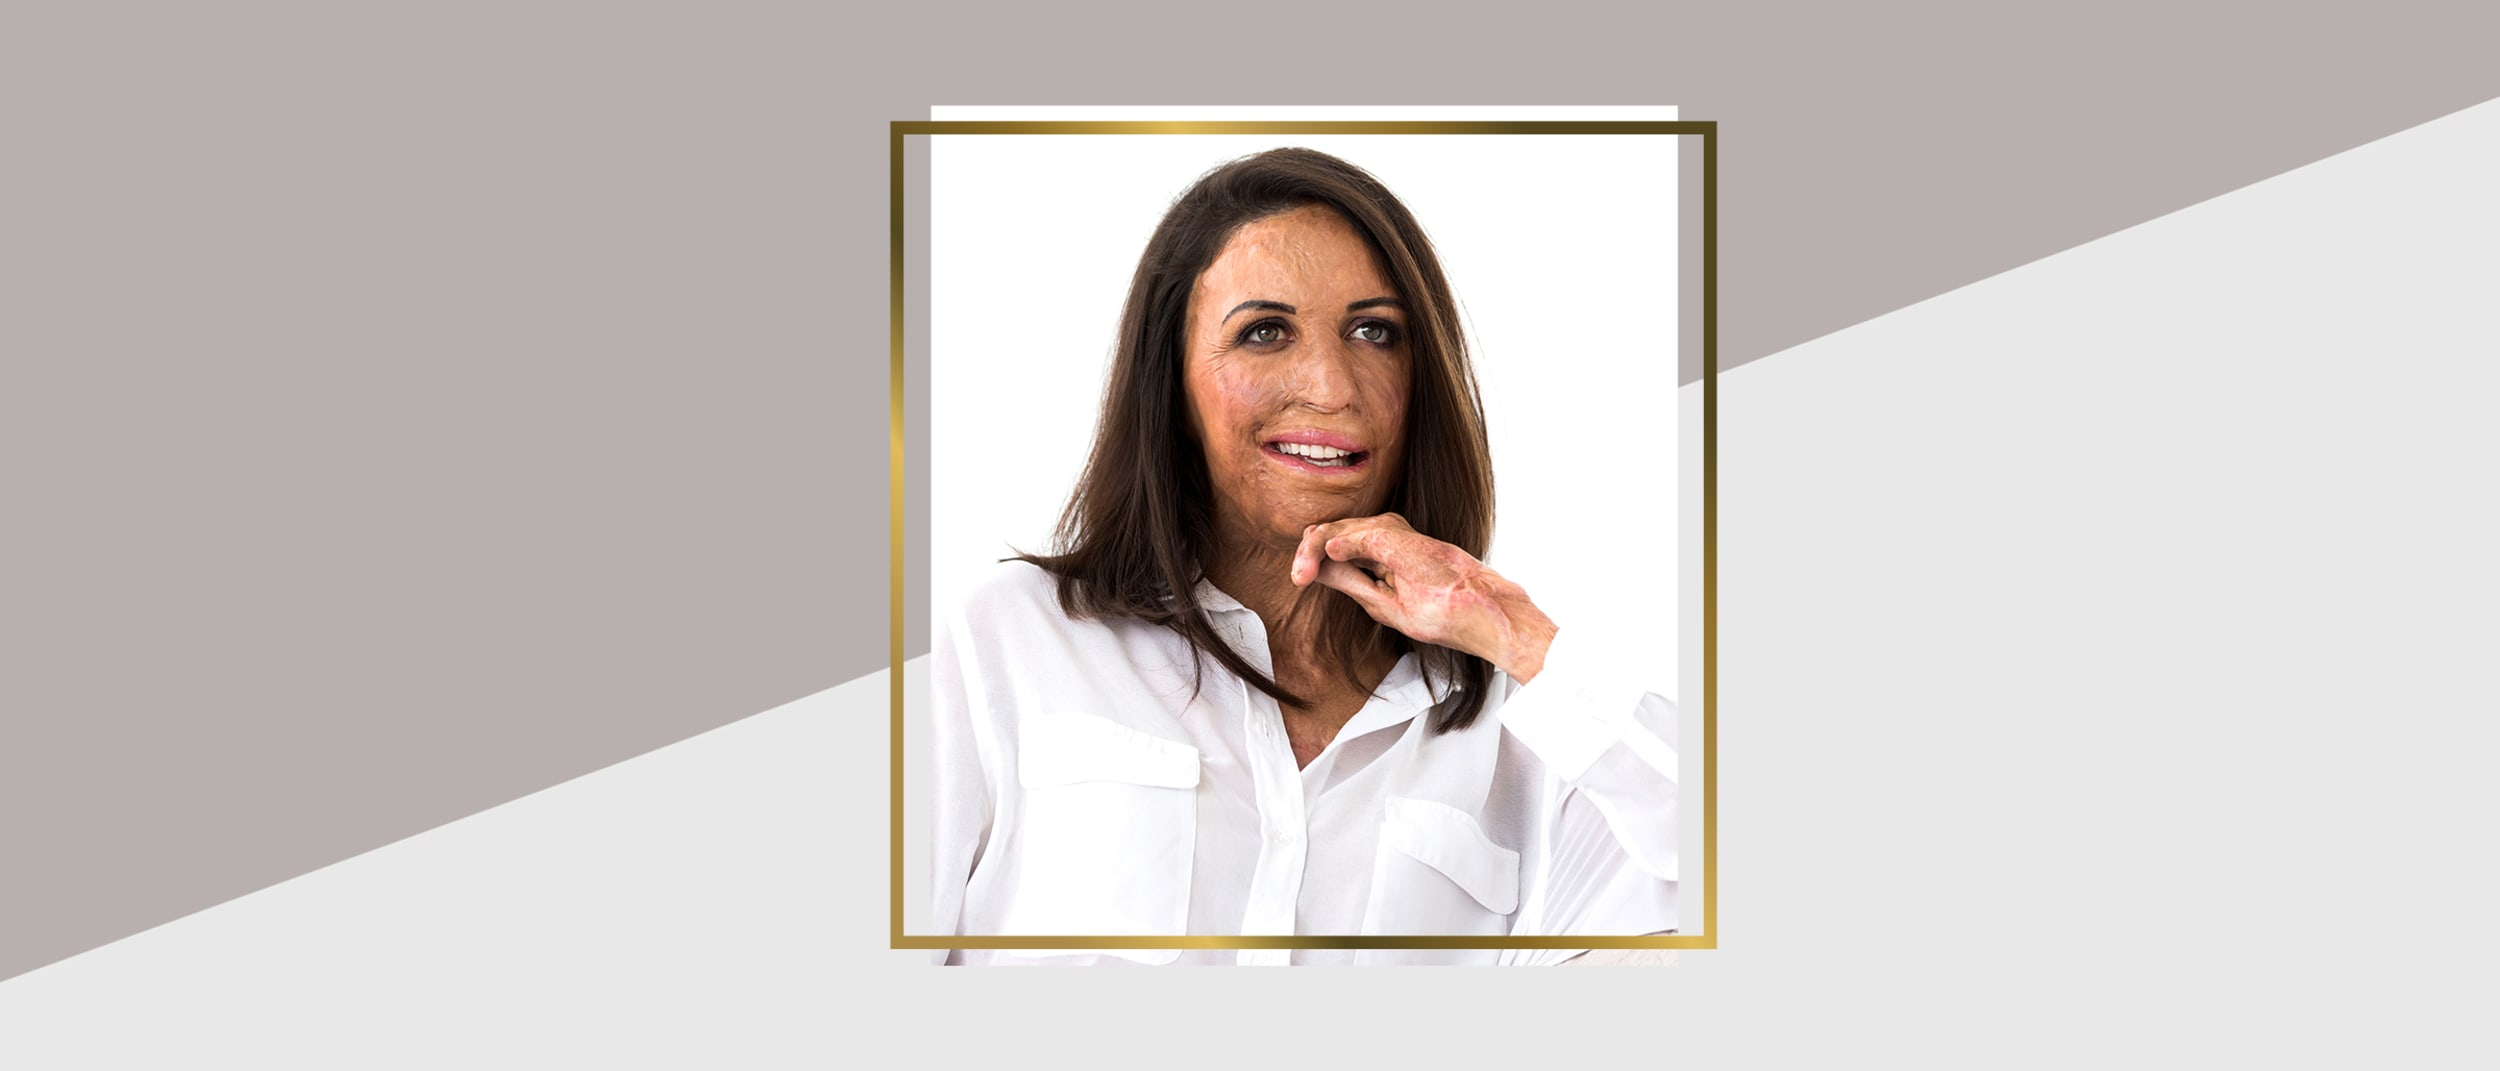 Westfield Women in Conversation with Turia Pitt